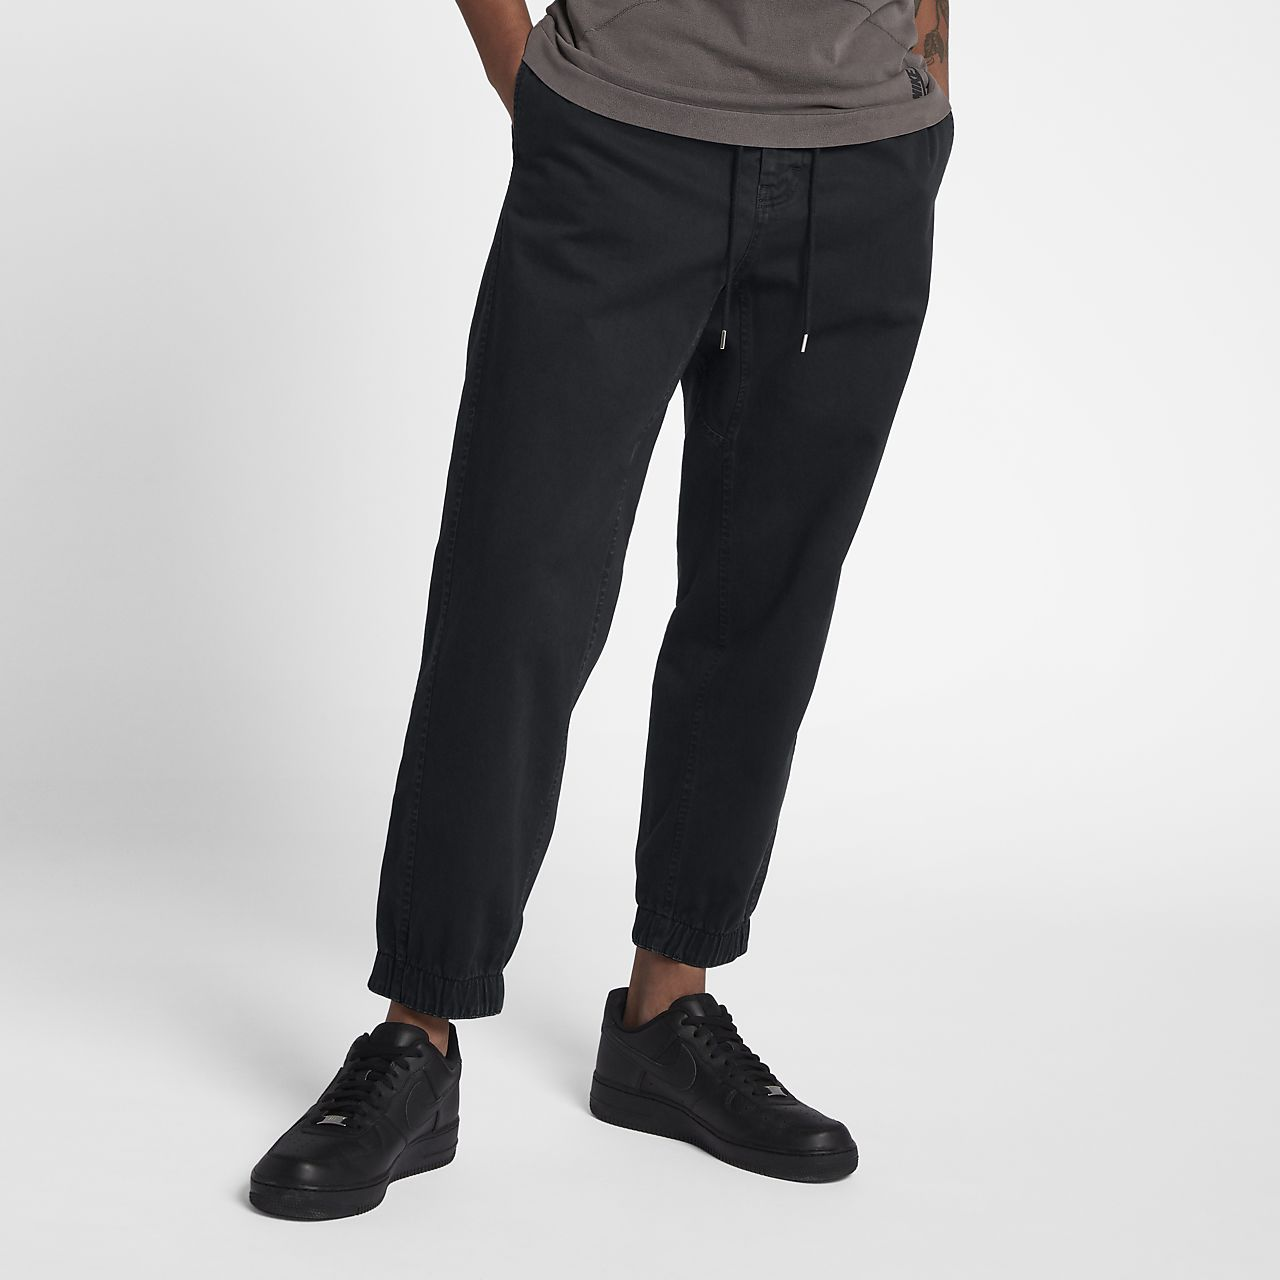 NikeLab Made in Italy Men's Woven Trousers